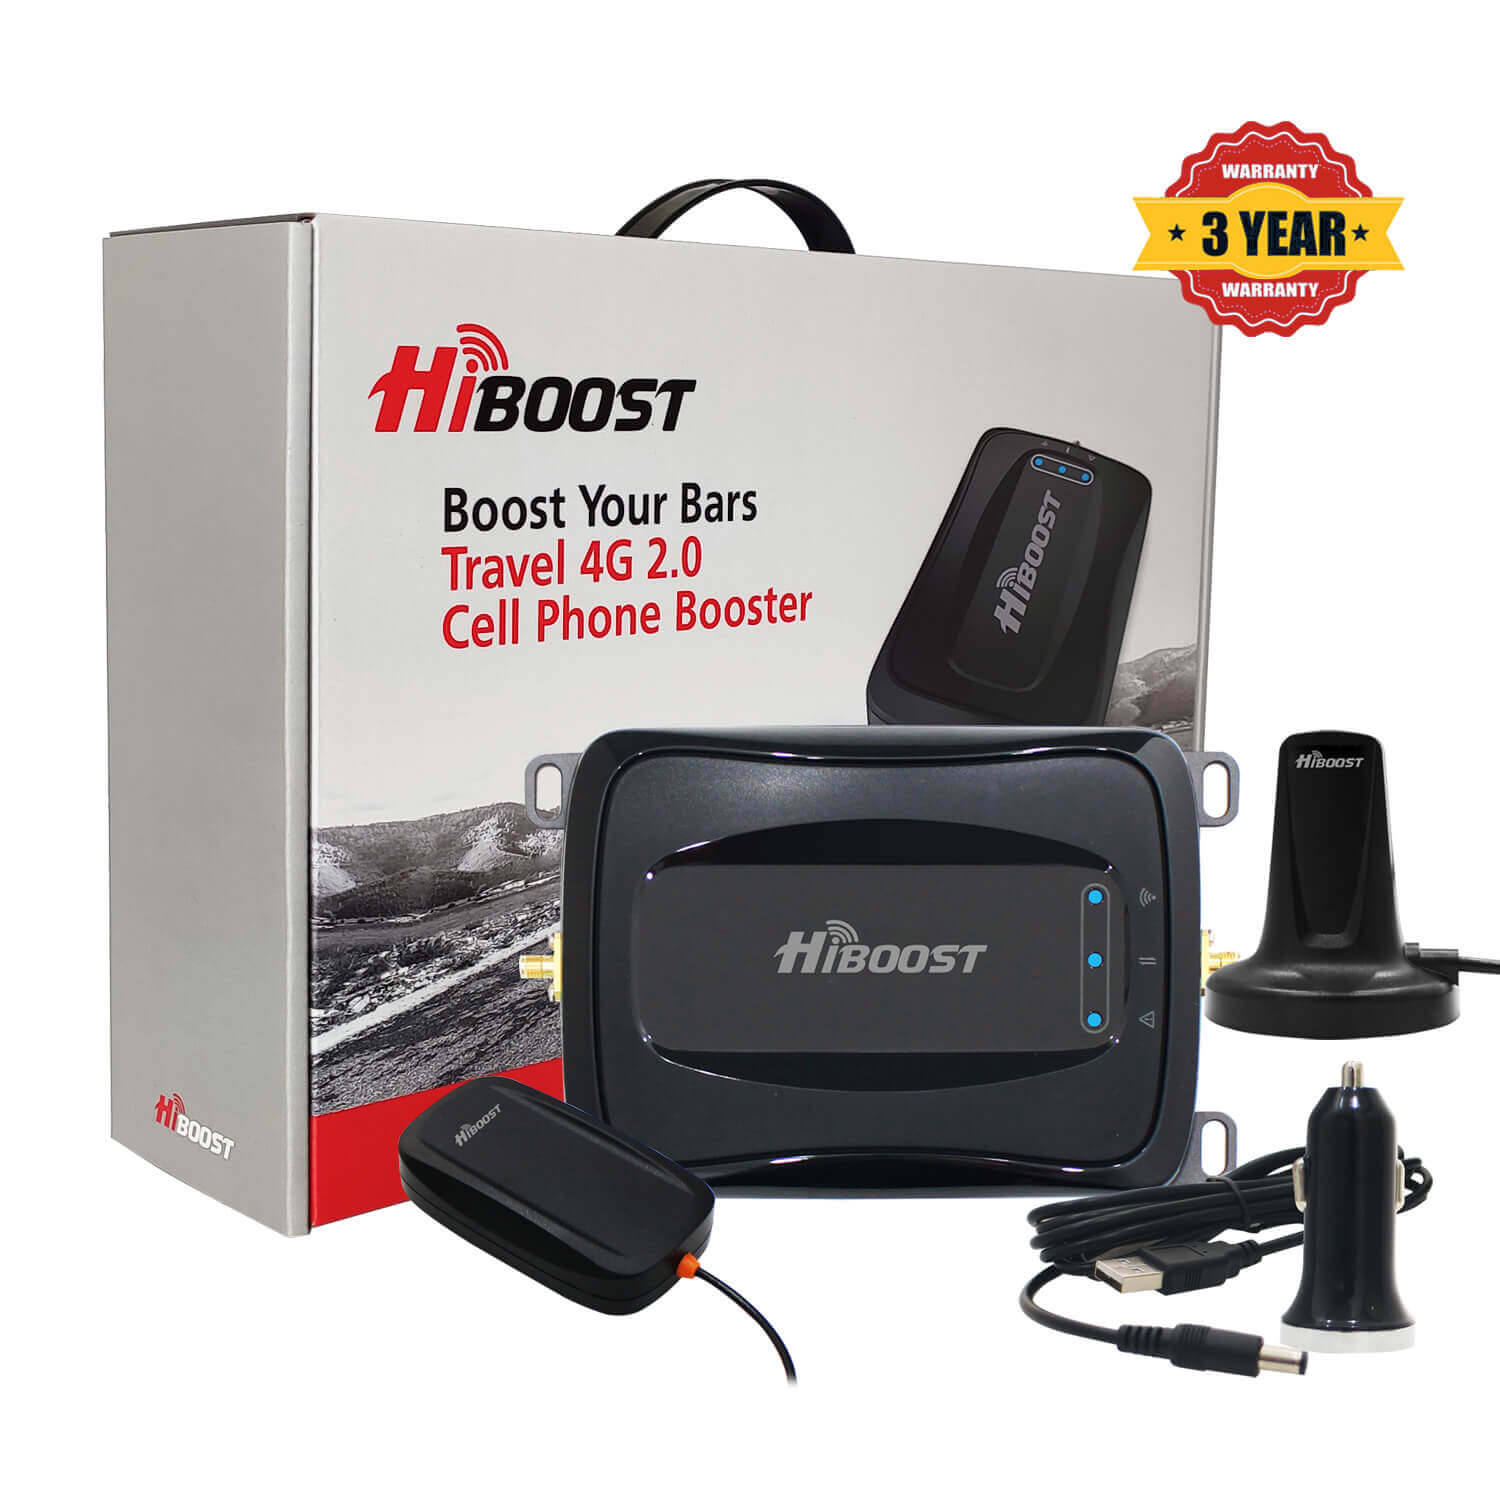 Hiboost-Travel-4G-2.0-CellularSignal-Booster-2